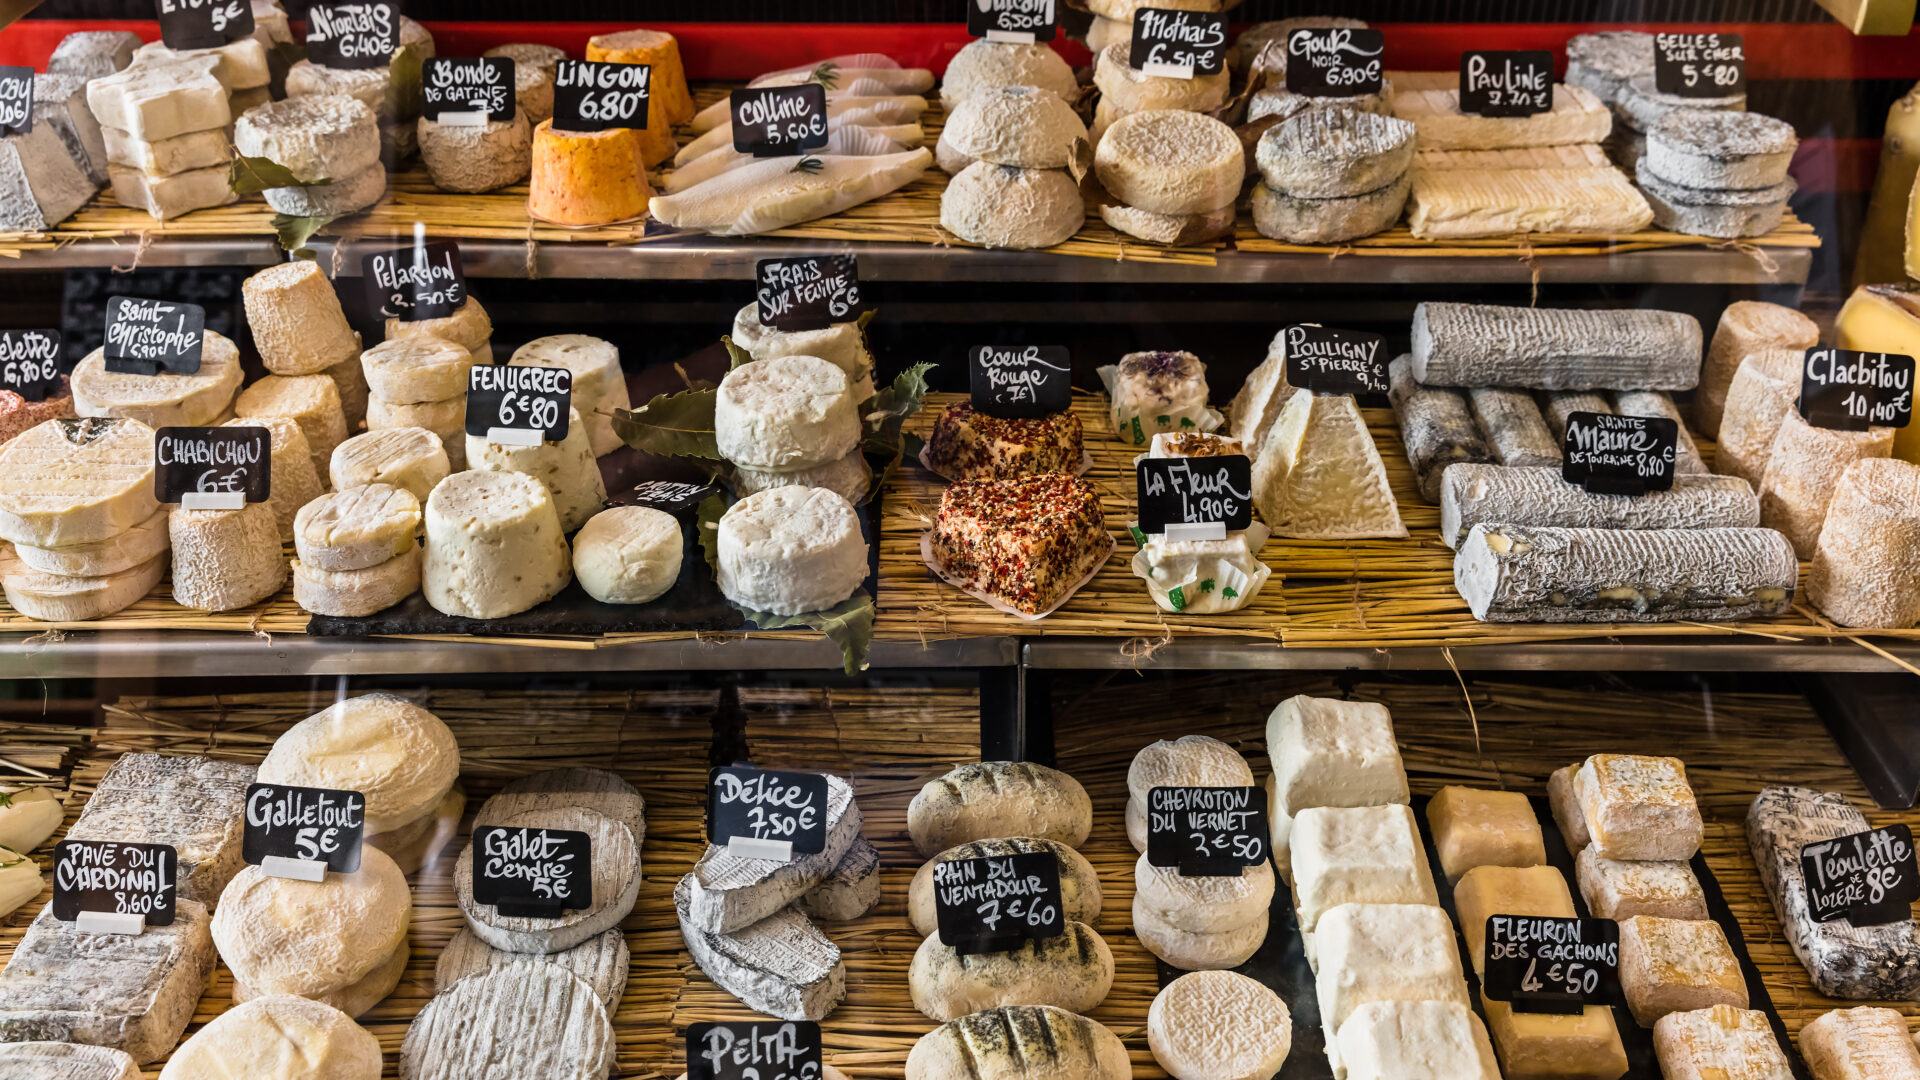 A cheese presentation with lots of varieties on a market stand